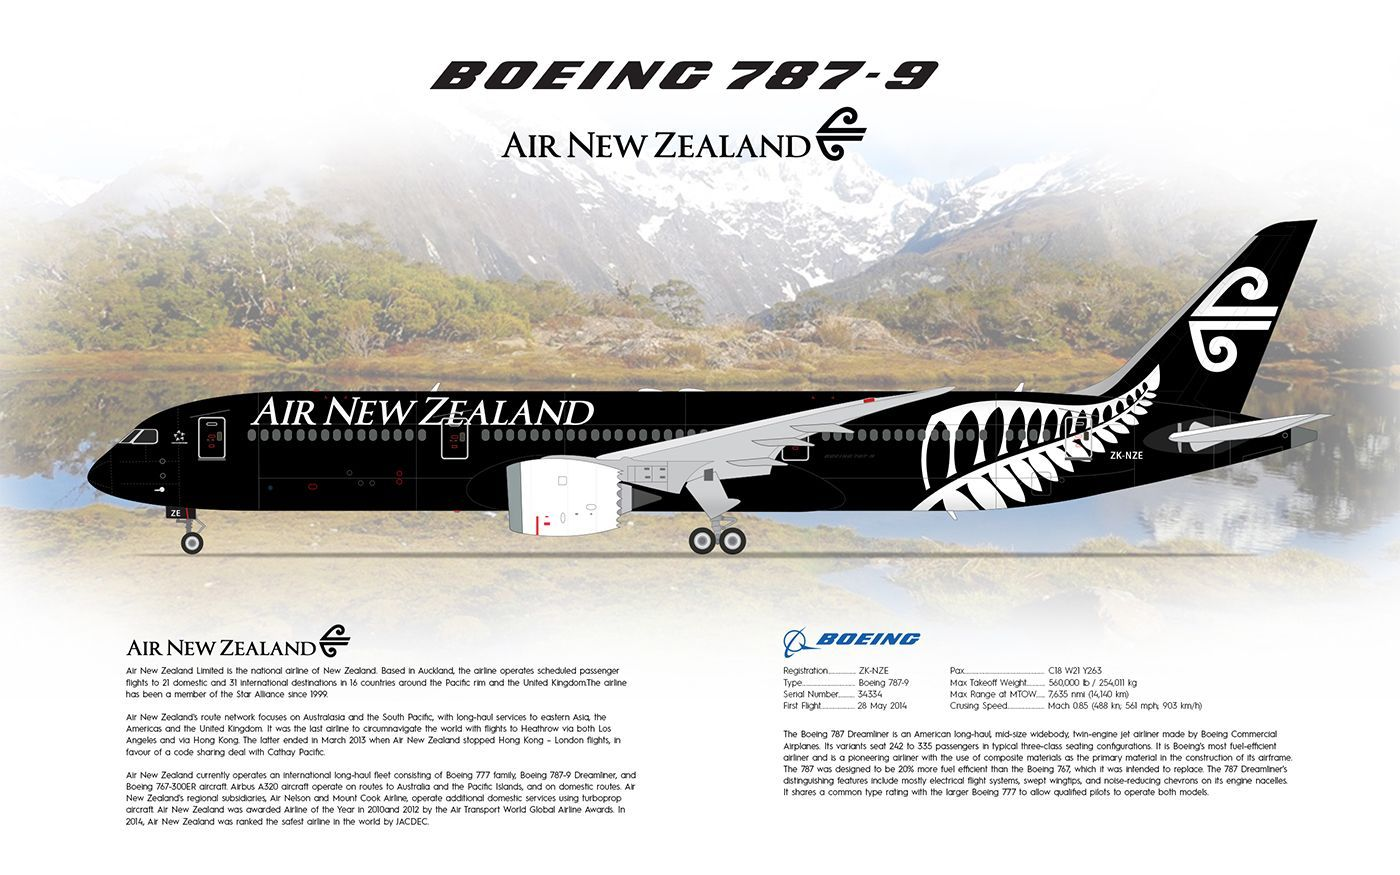 Air New Zealand Boeing 787-9 Dreamliner | Airplanes